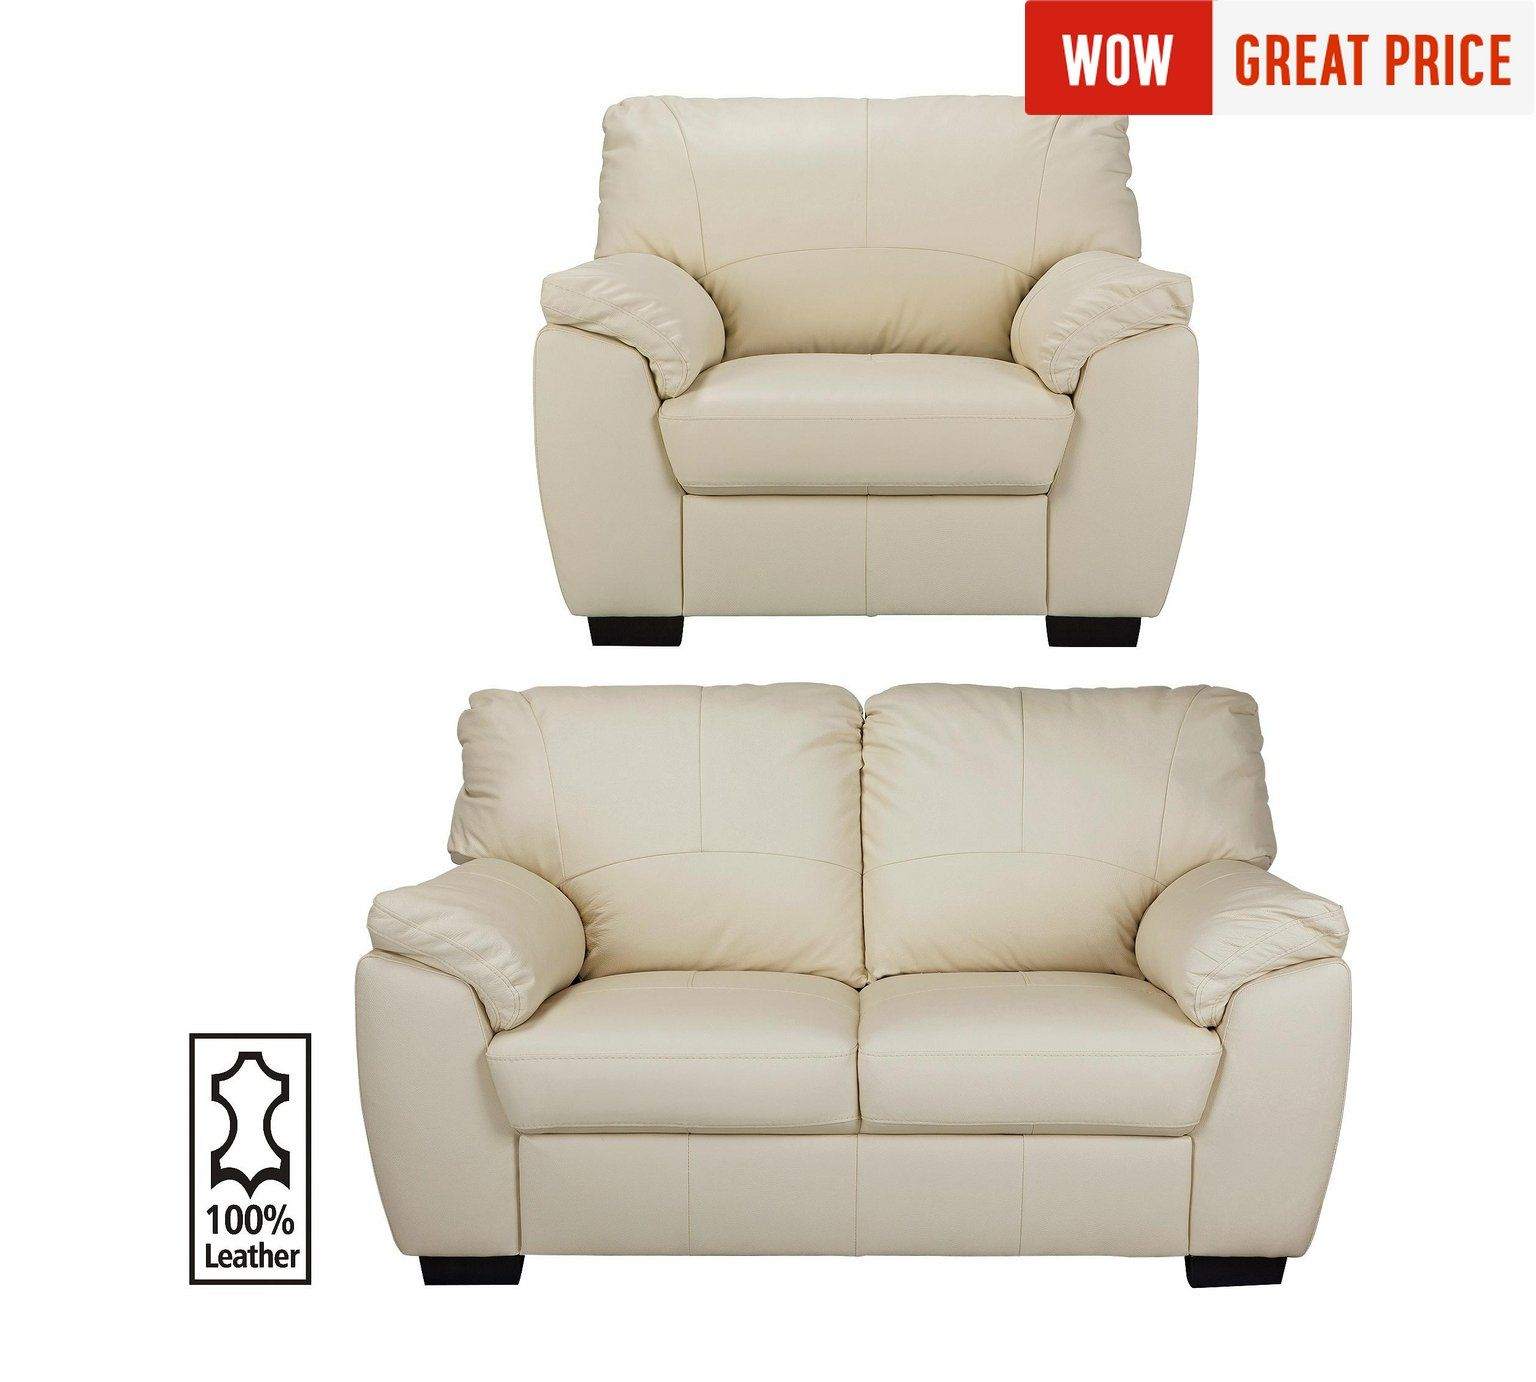 Buy Collection Milano Leather 2 Seater Sofa and Chair - Ivory at ...